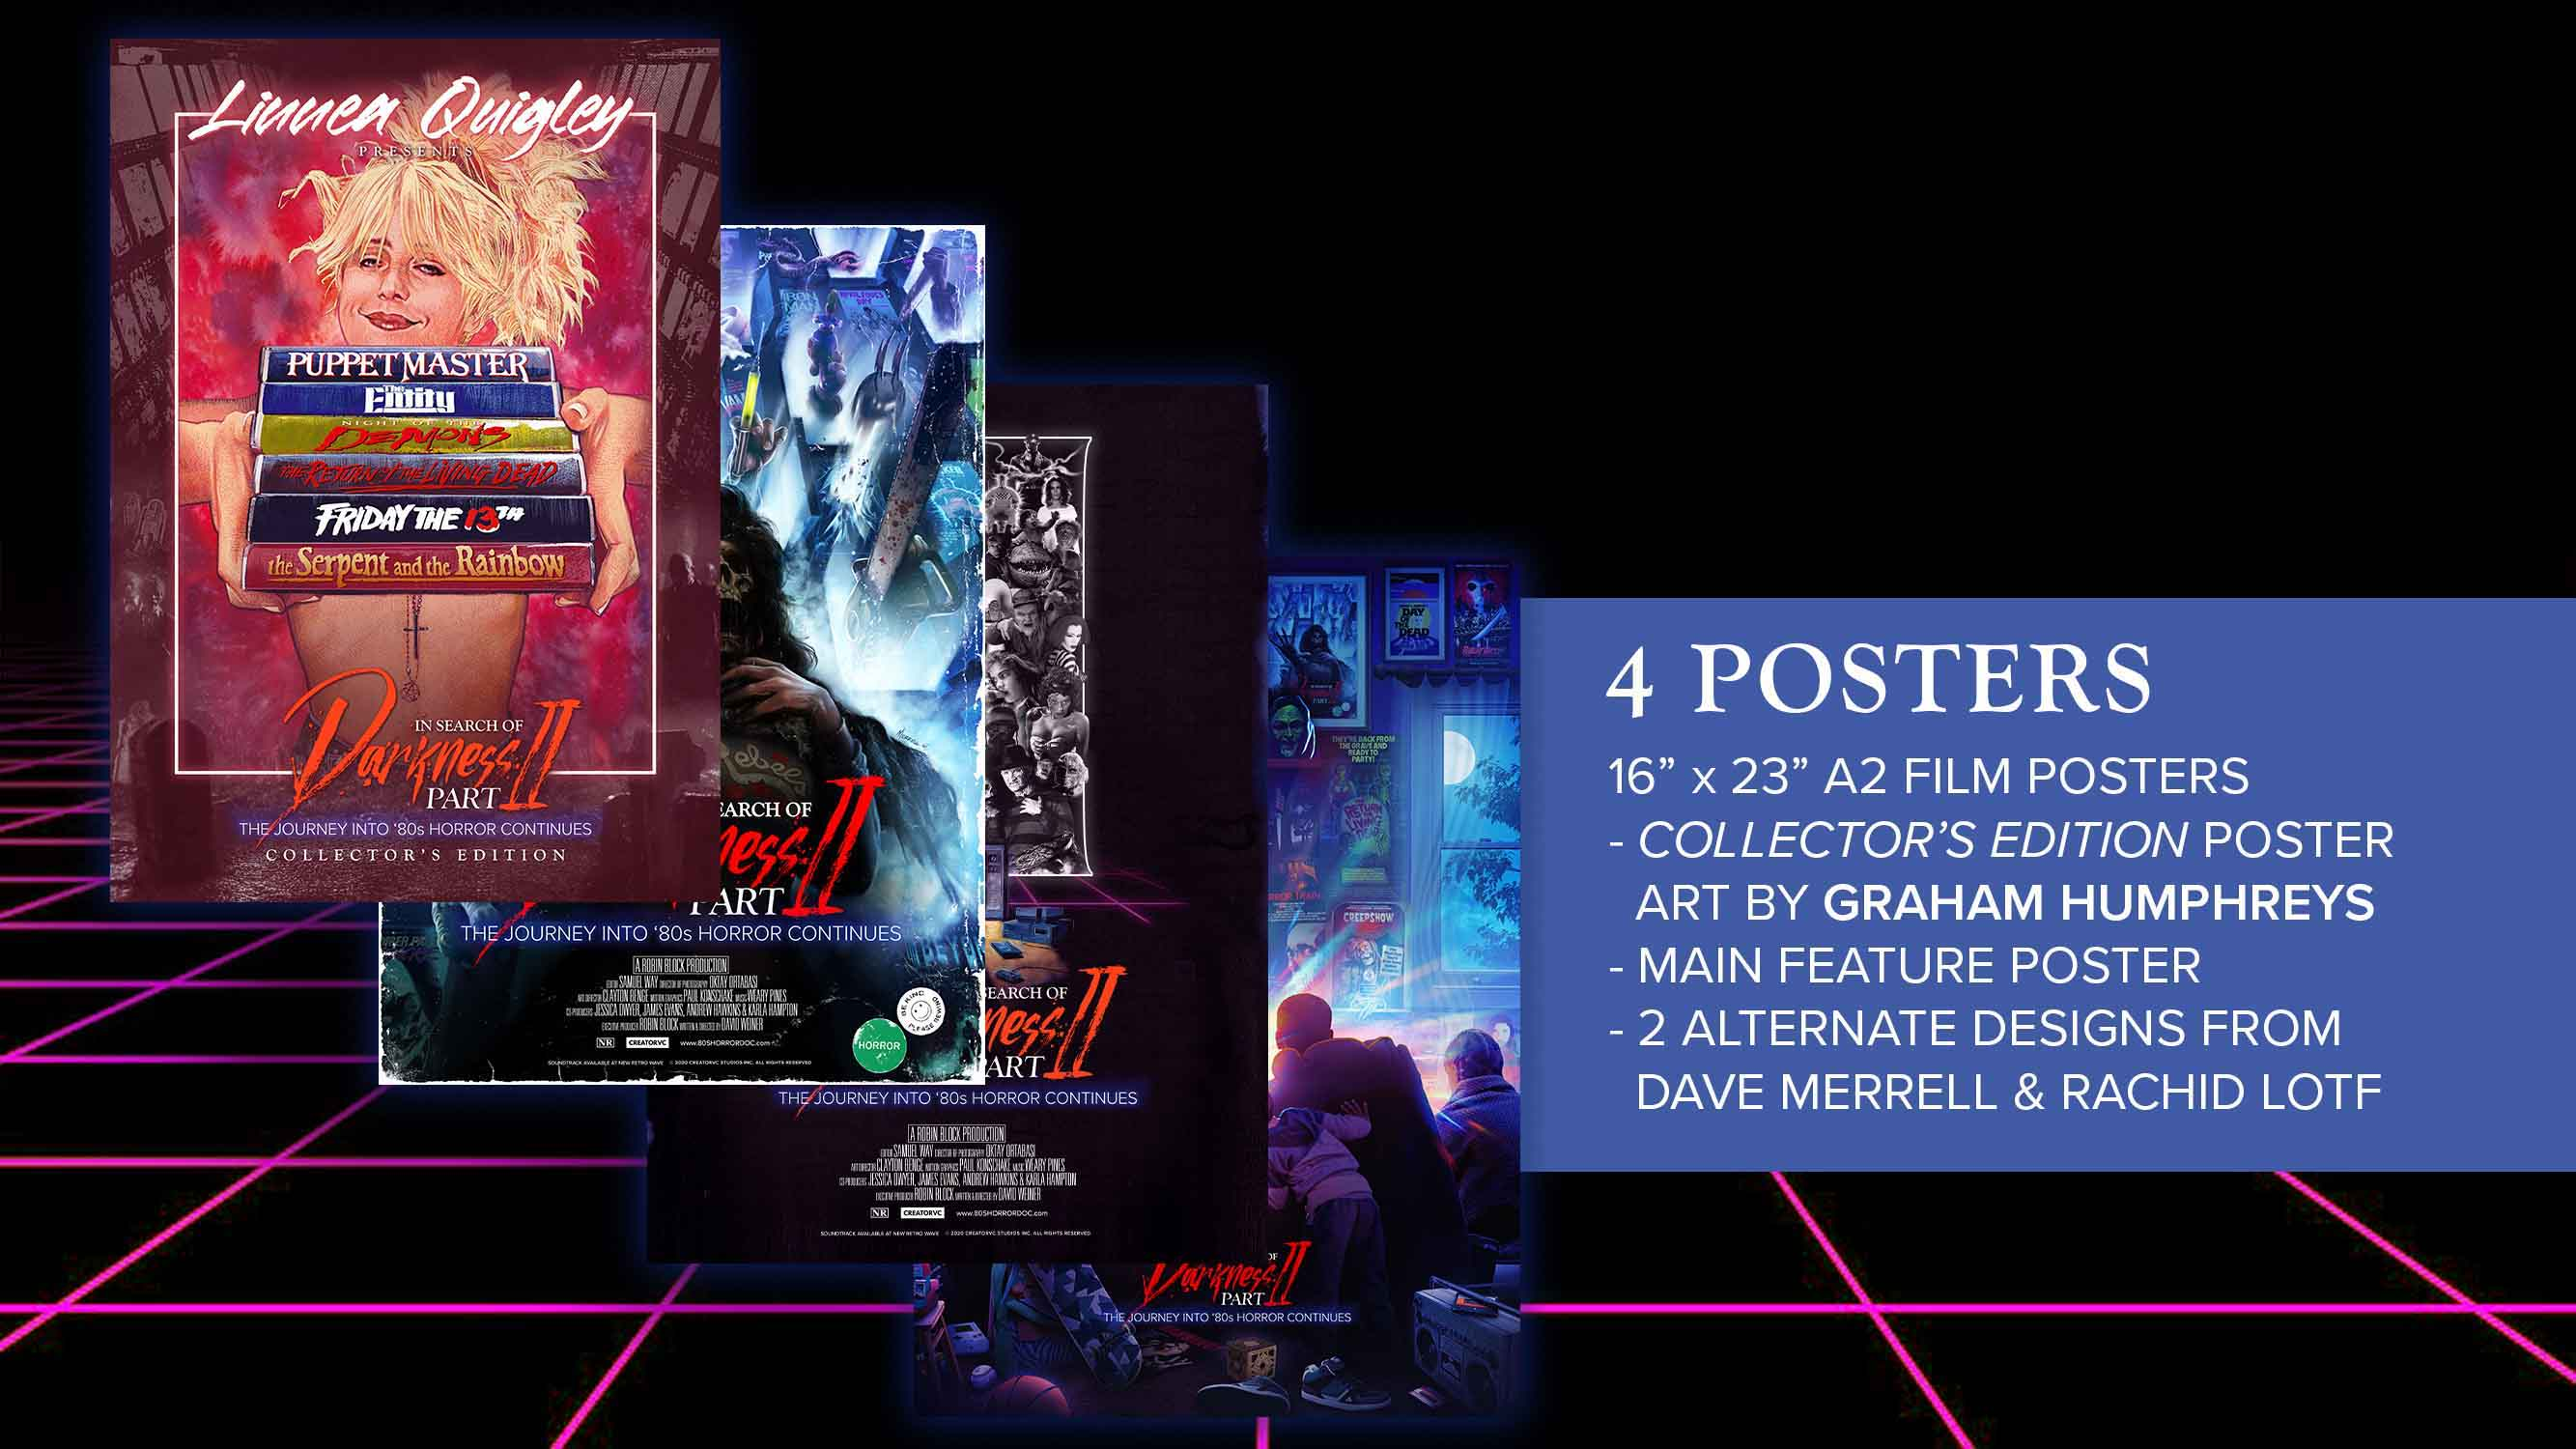 In Search of Darkness Part II, Linnea Quigley Collector's Edition poster package